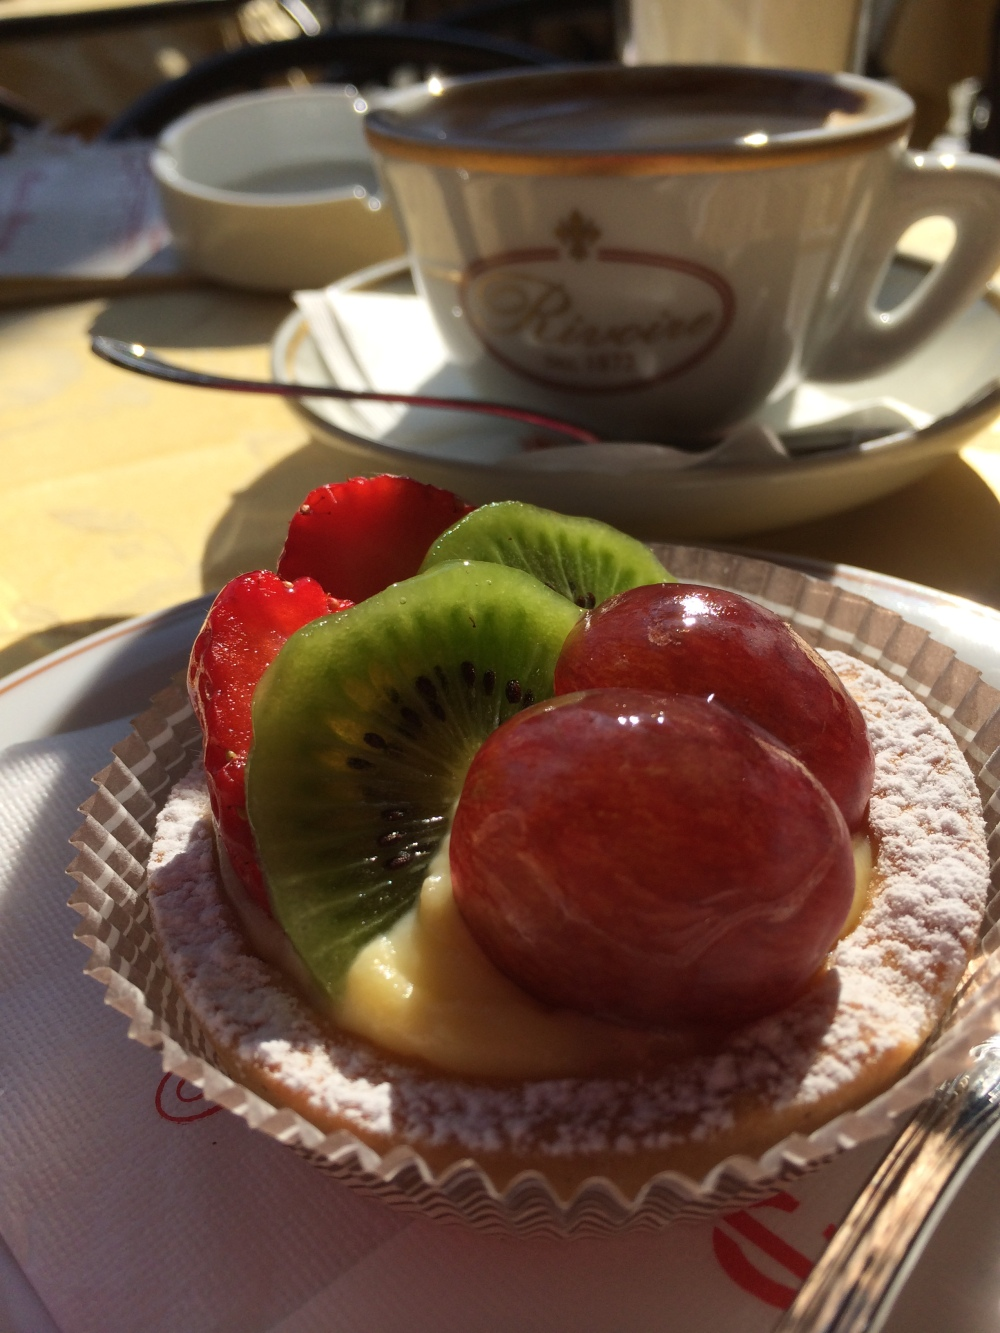 Fruit tart and a coffee overlooking the Uffizi. Turns out this is one of the best known cafes in Florence. I chose it because the waiters were older and the clientele Italian.